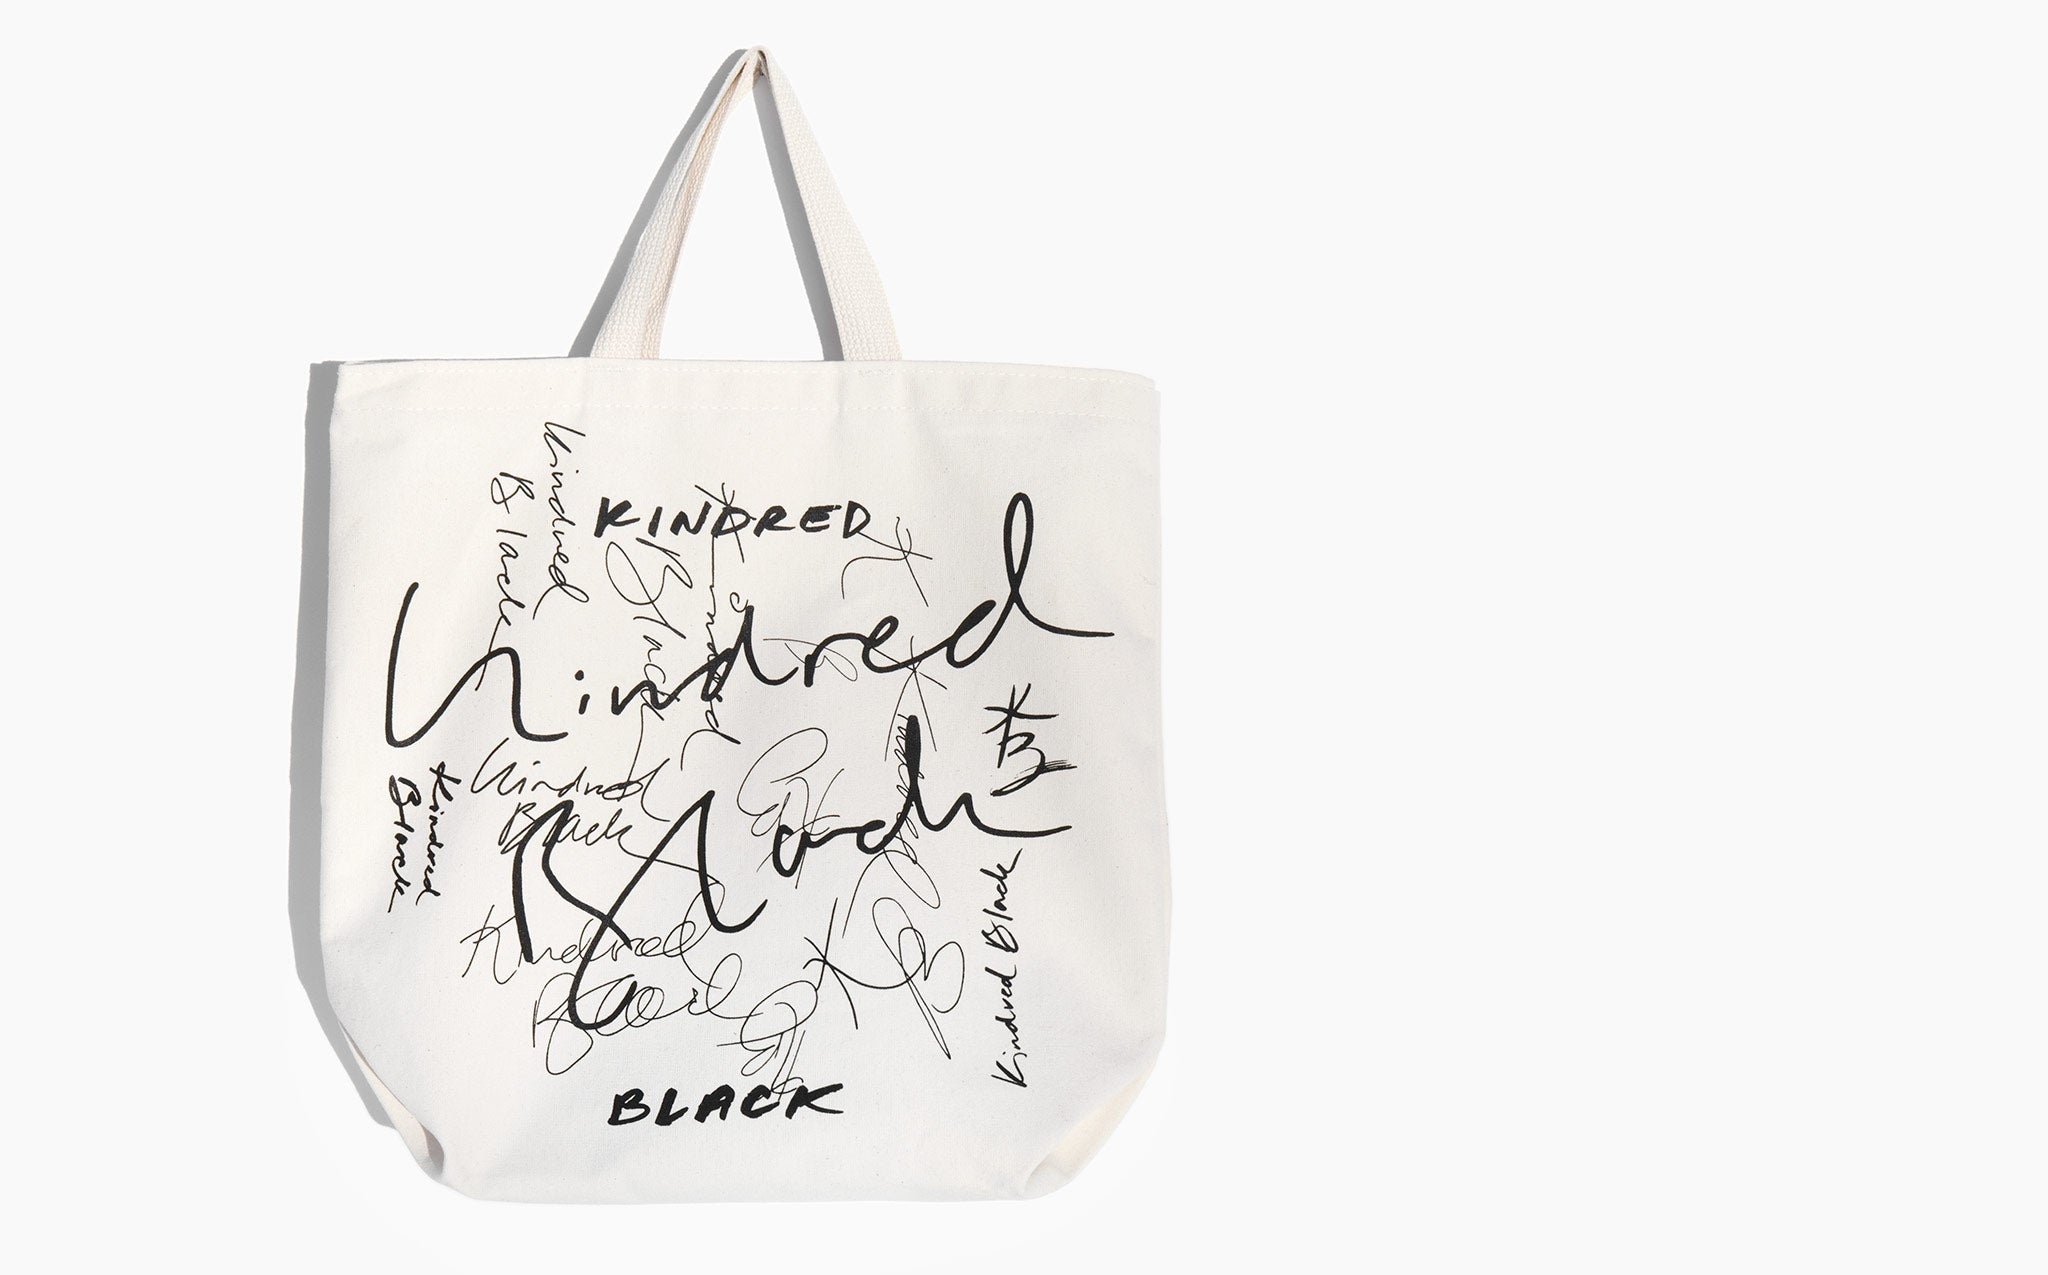 Kindred Black Canvas Logo Tote